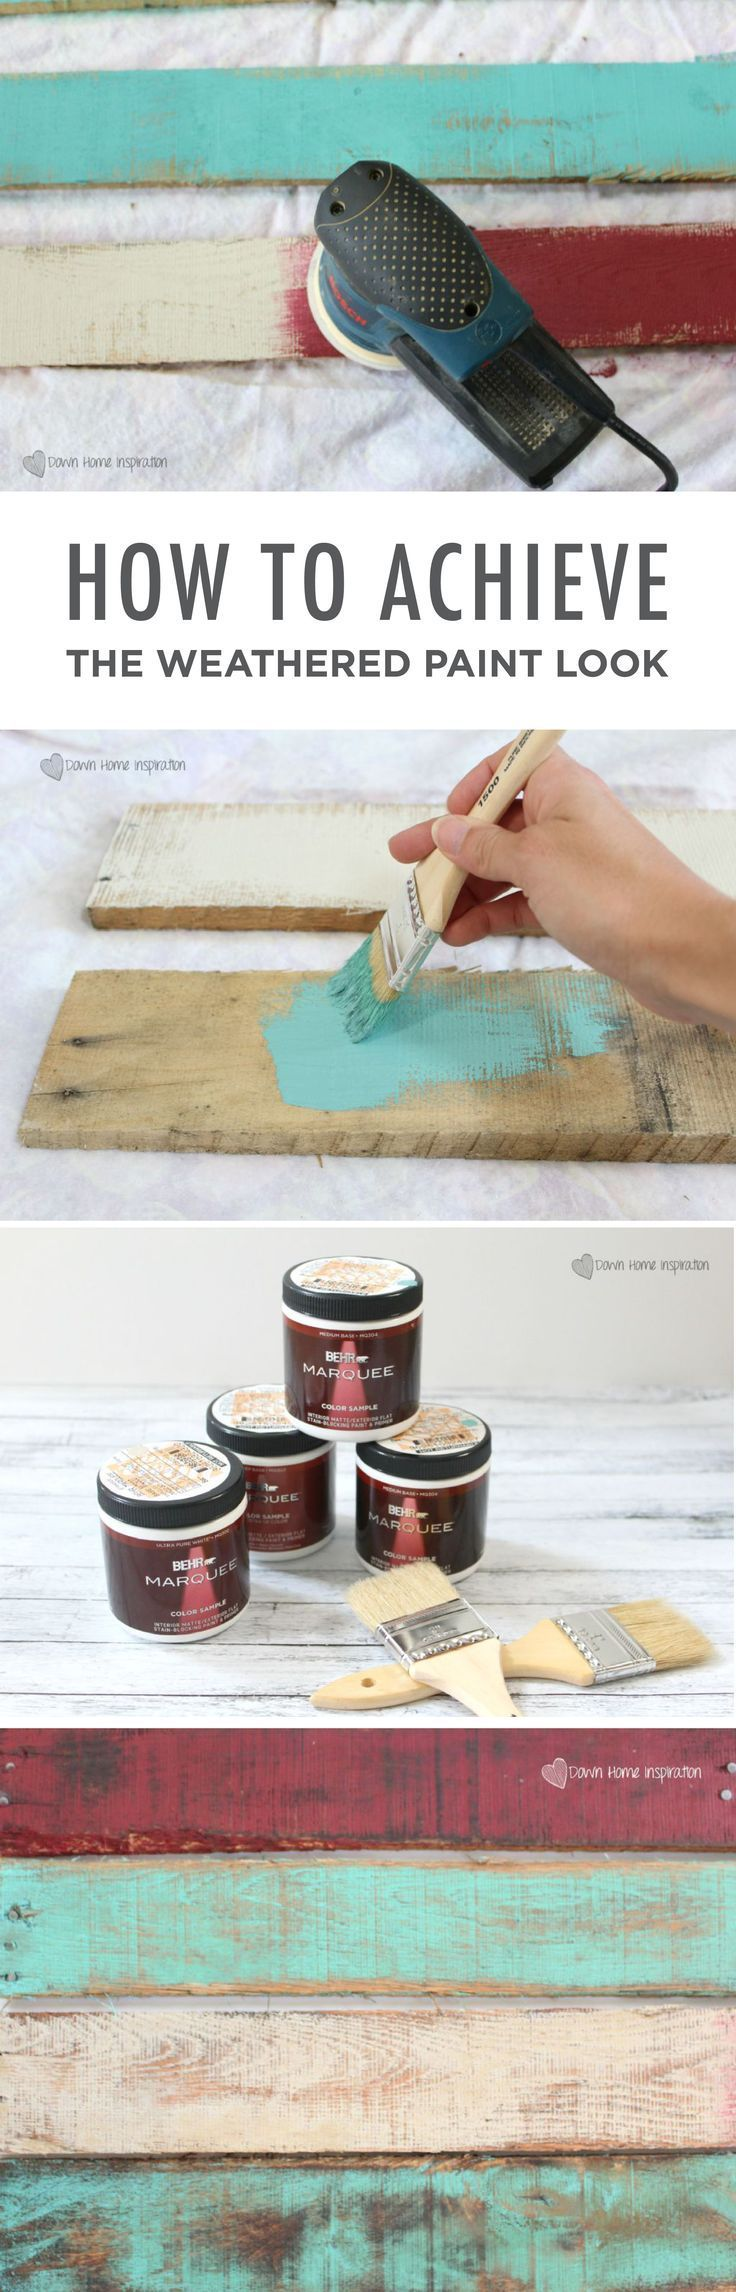 Ideas : Blogger Down Home Inspiration has the key to achieving the perfect distressed, rustic paint look. These DIY tips and tricks are sure to help you capture a charming country feel in your space.